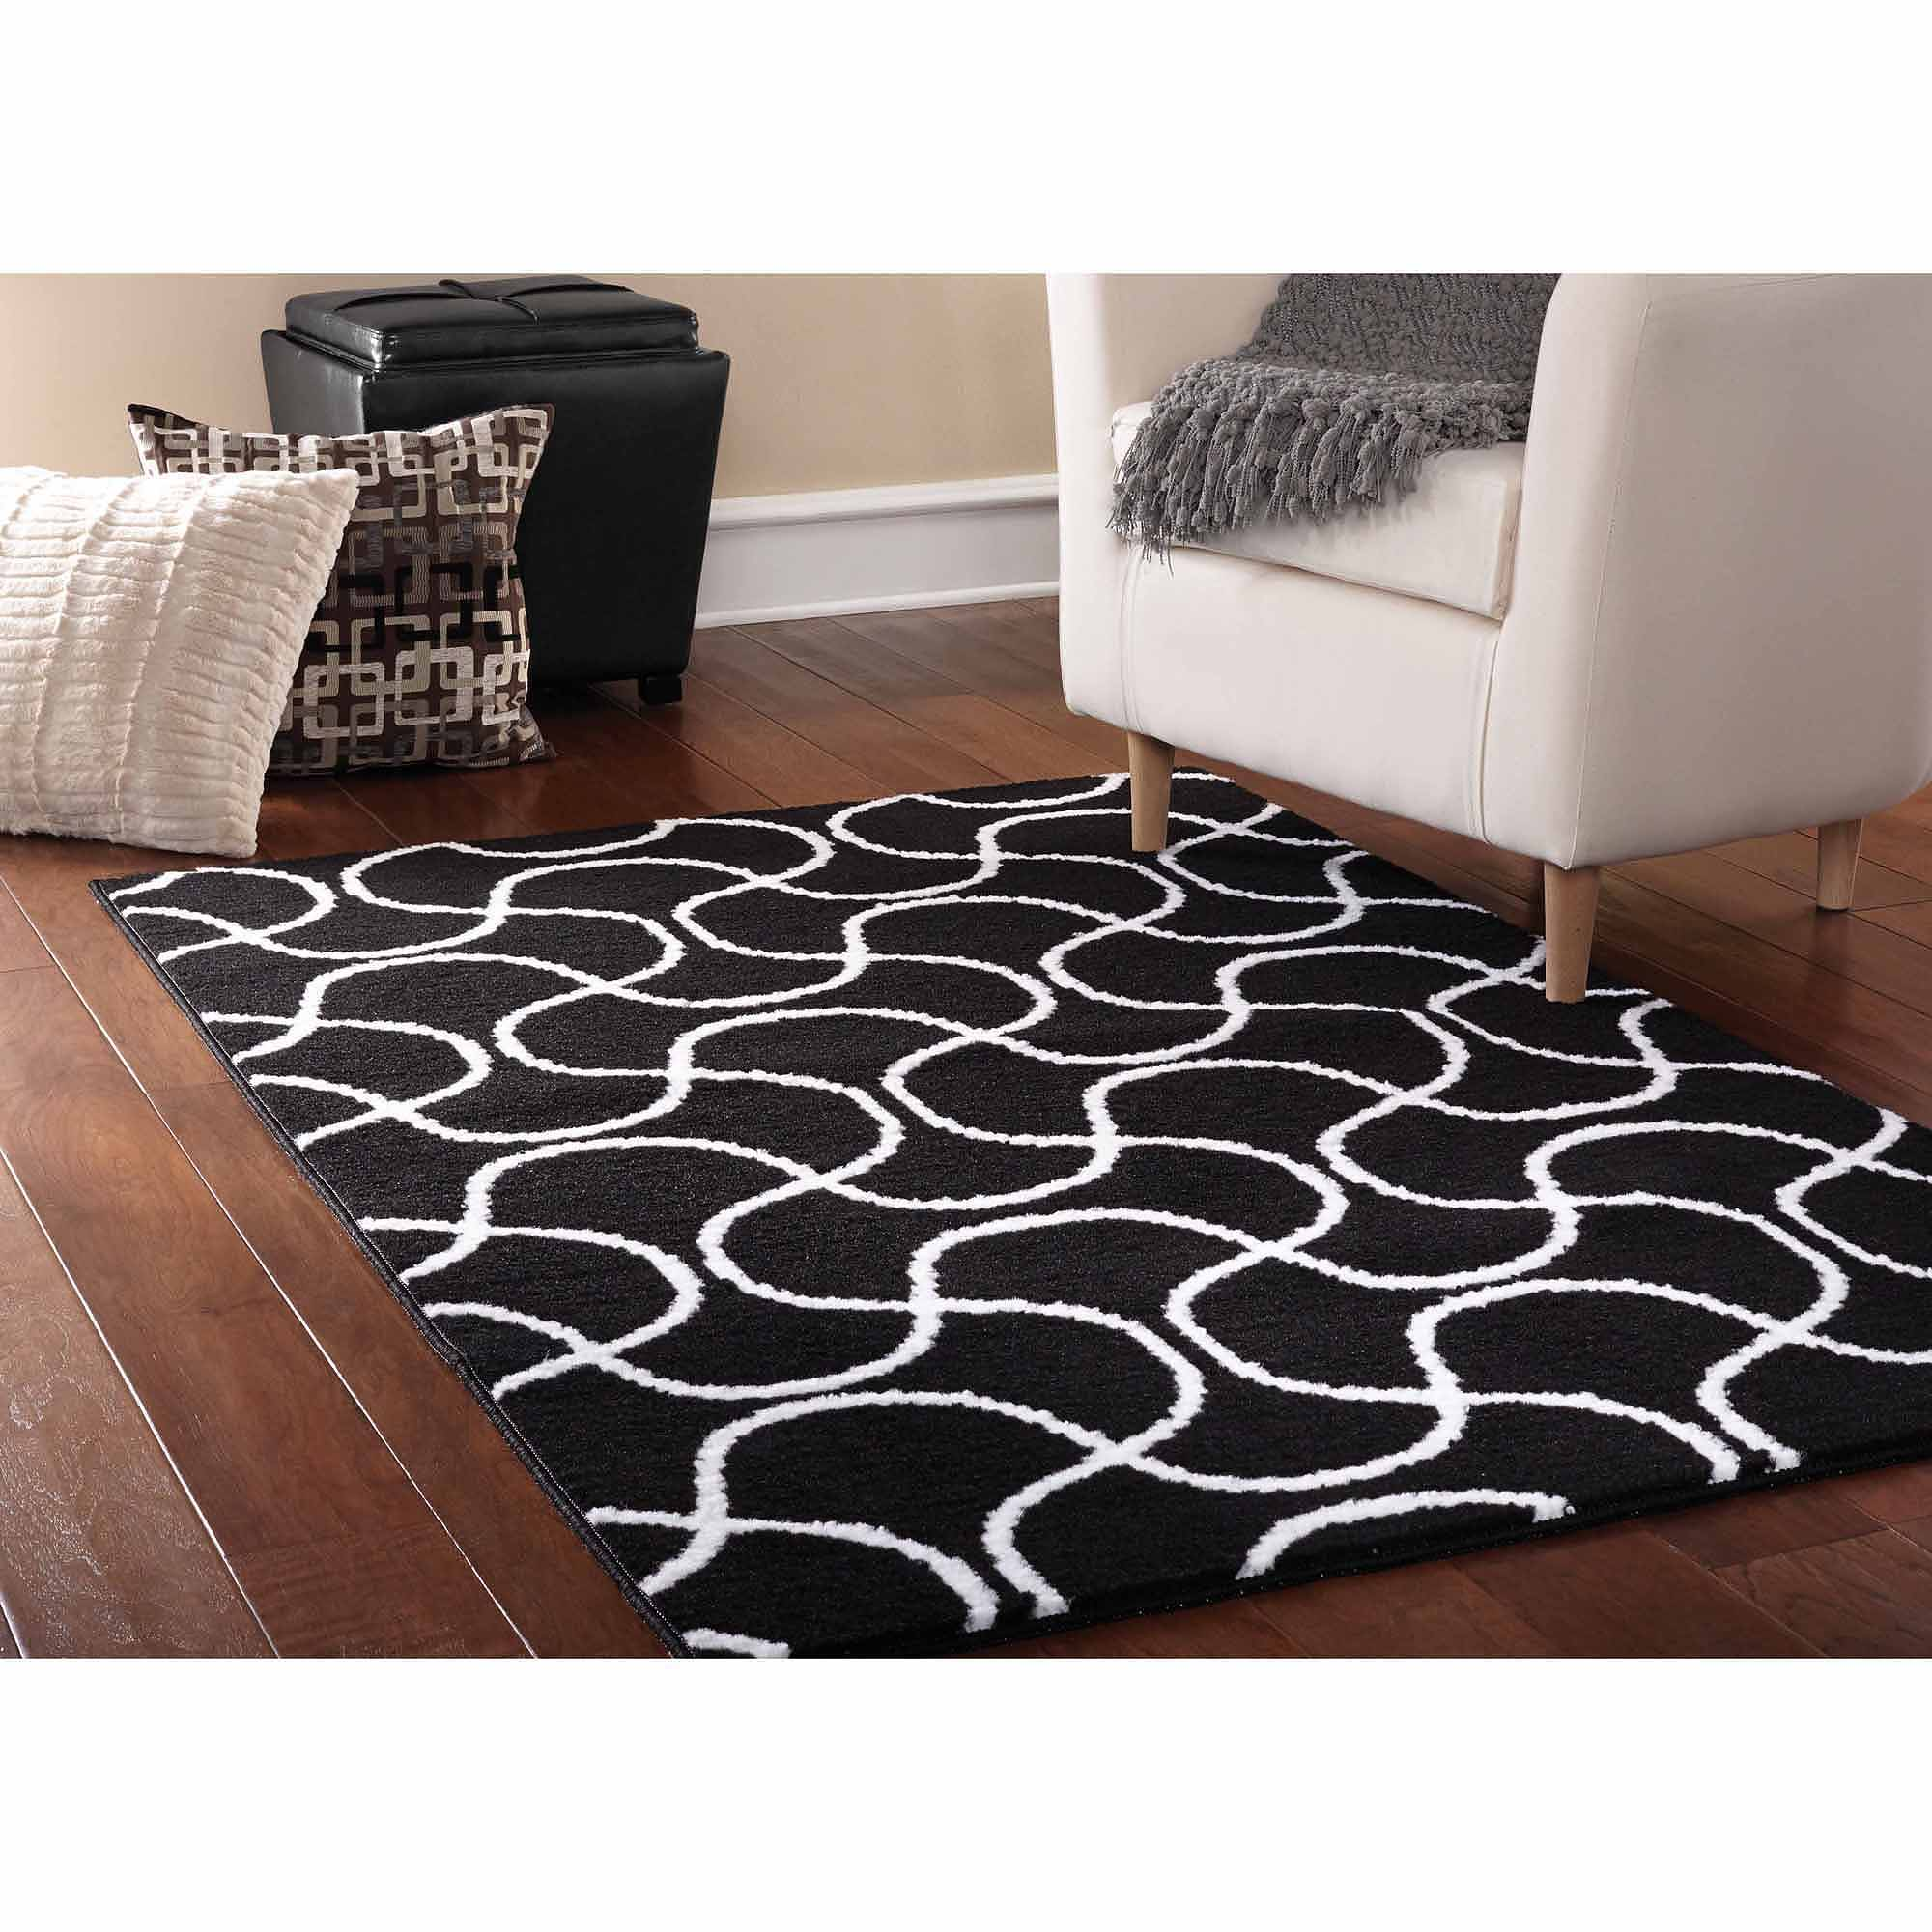 high to is a your unique offered rug soft carved stylish shag this add pattern ivory low room with color in patterned power pin loomed look contemporary